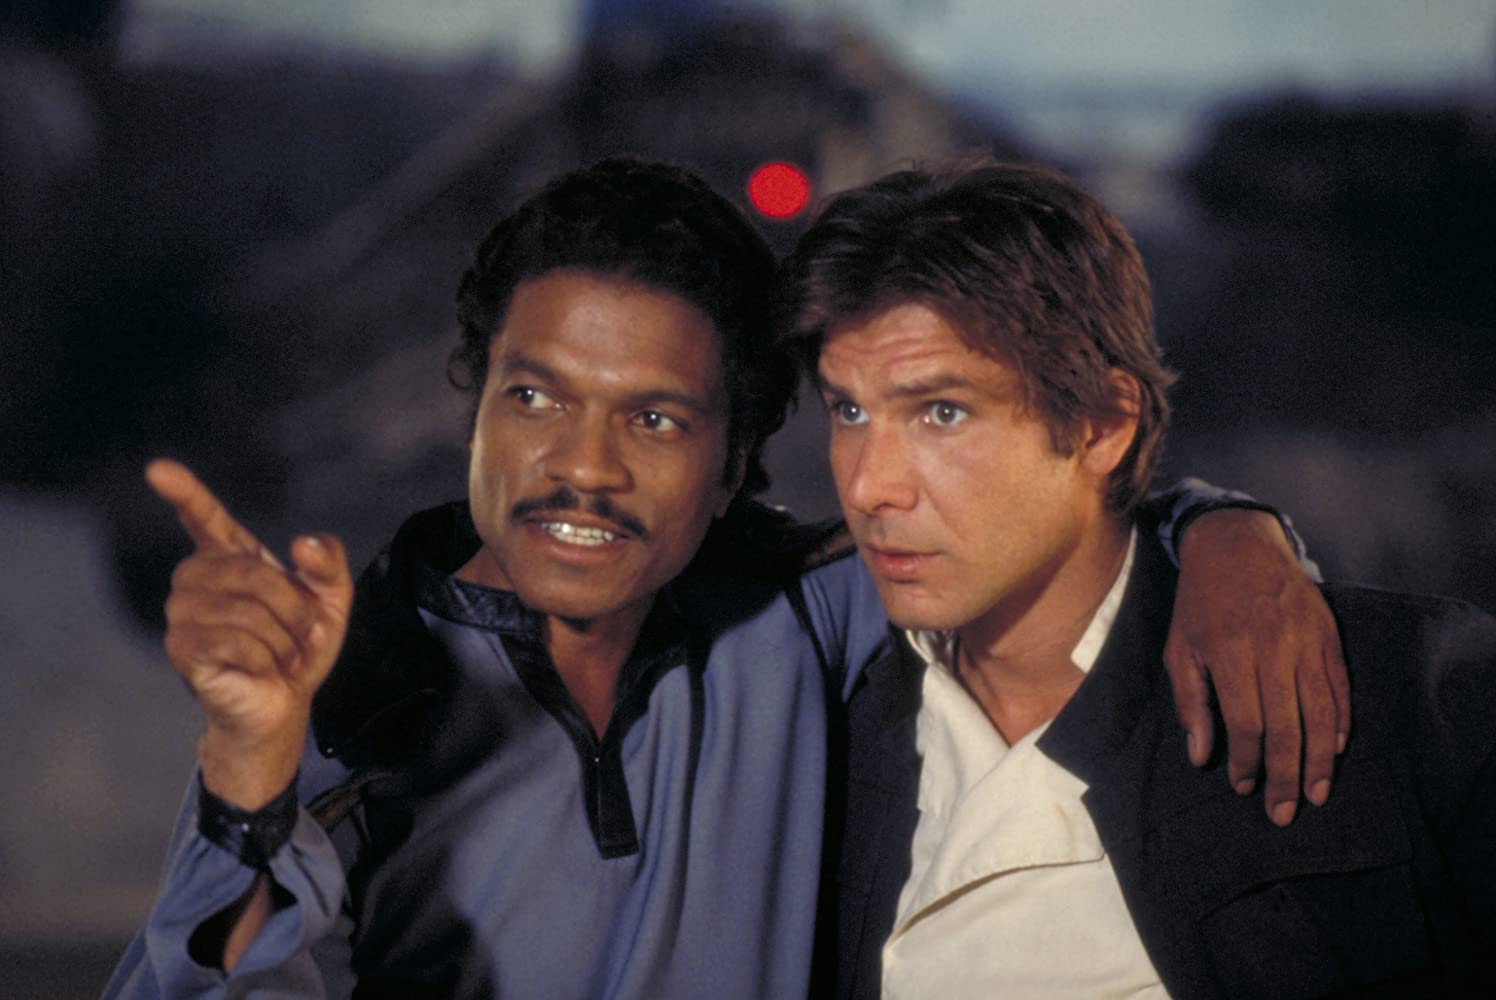 Harrison Ford and Billy Dee Williams in Star Wars: Episode V - The Empire Strikes Back (1980)